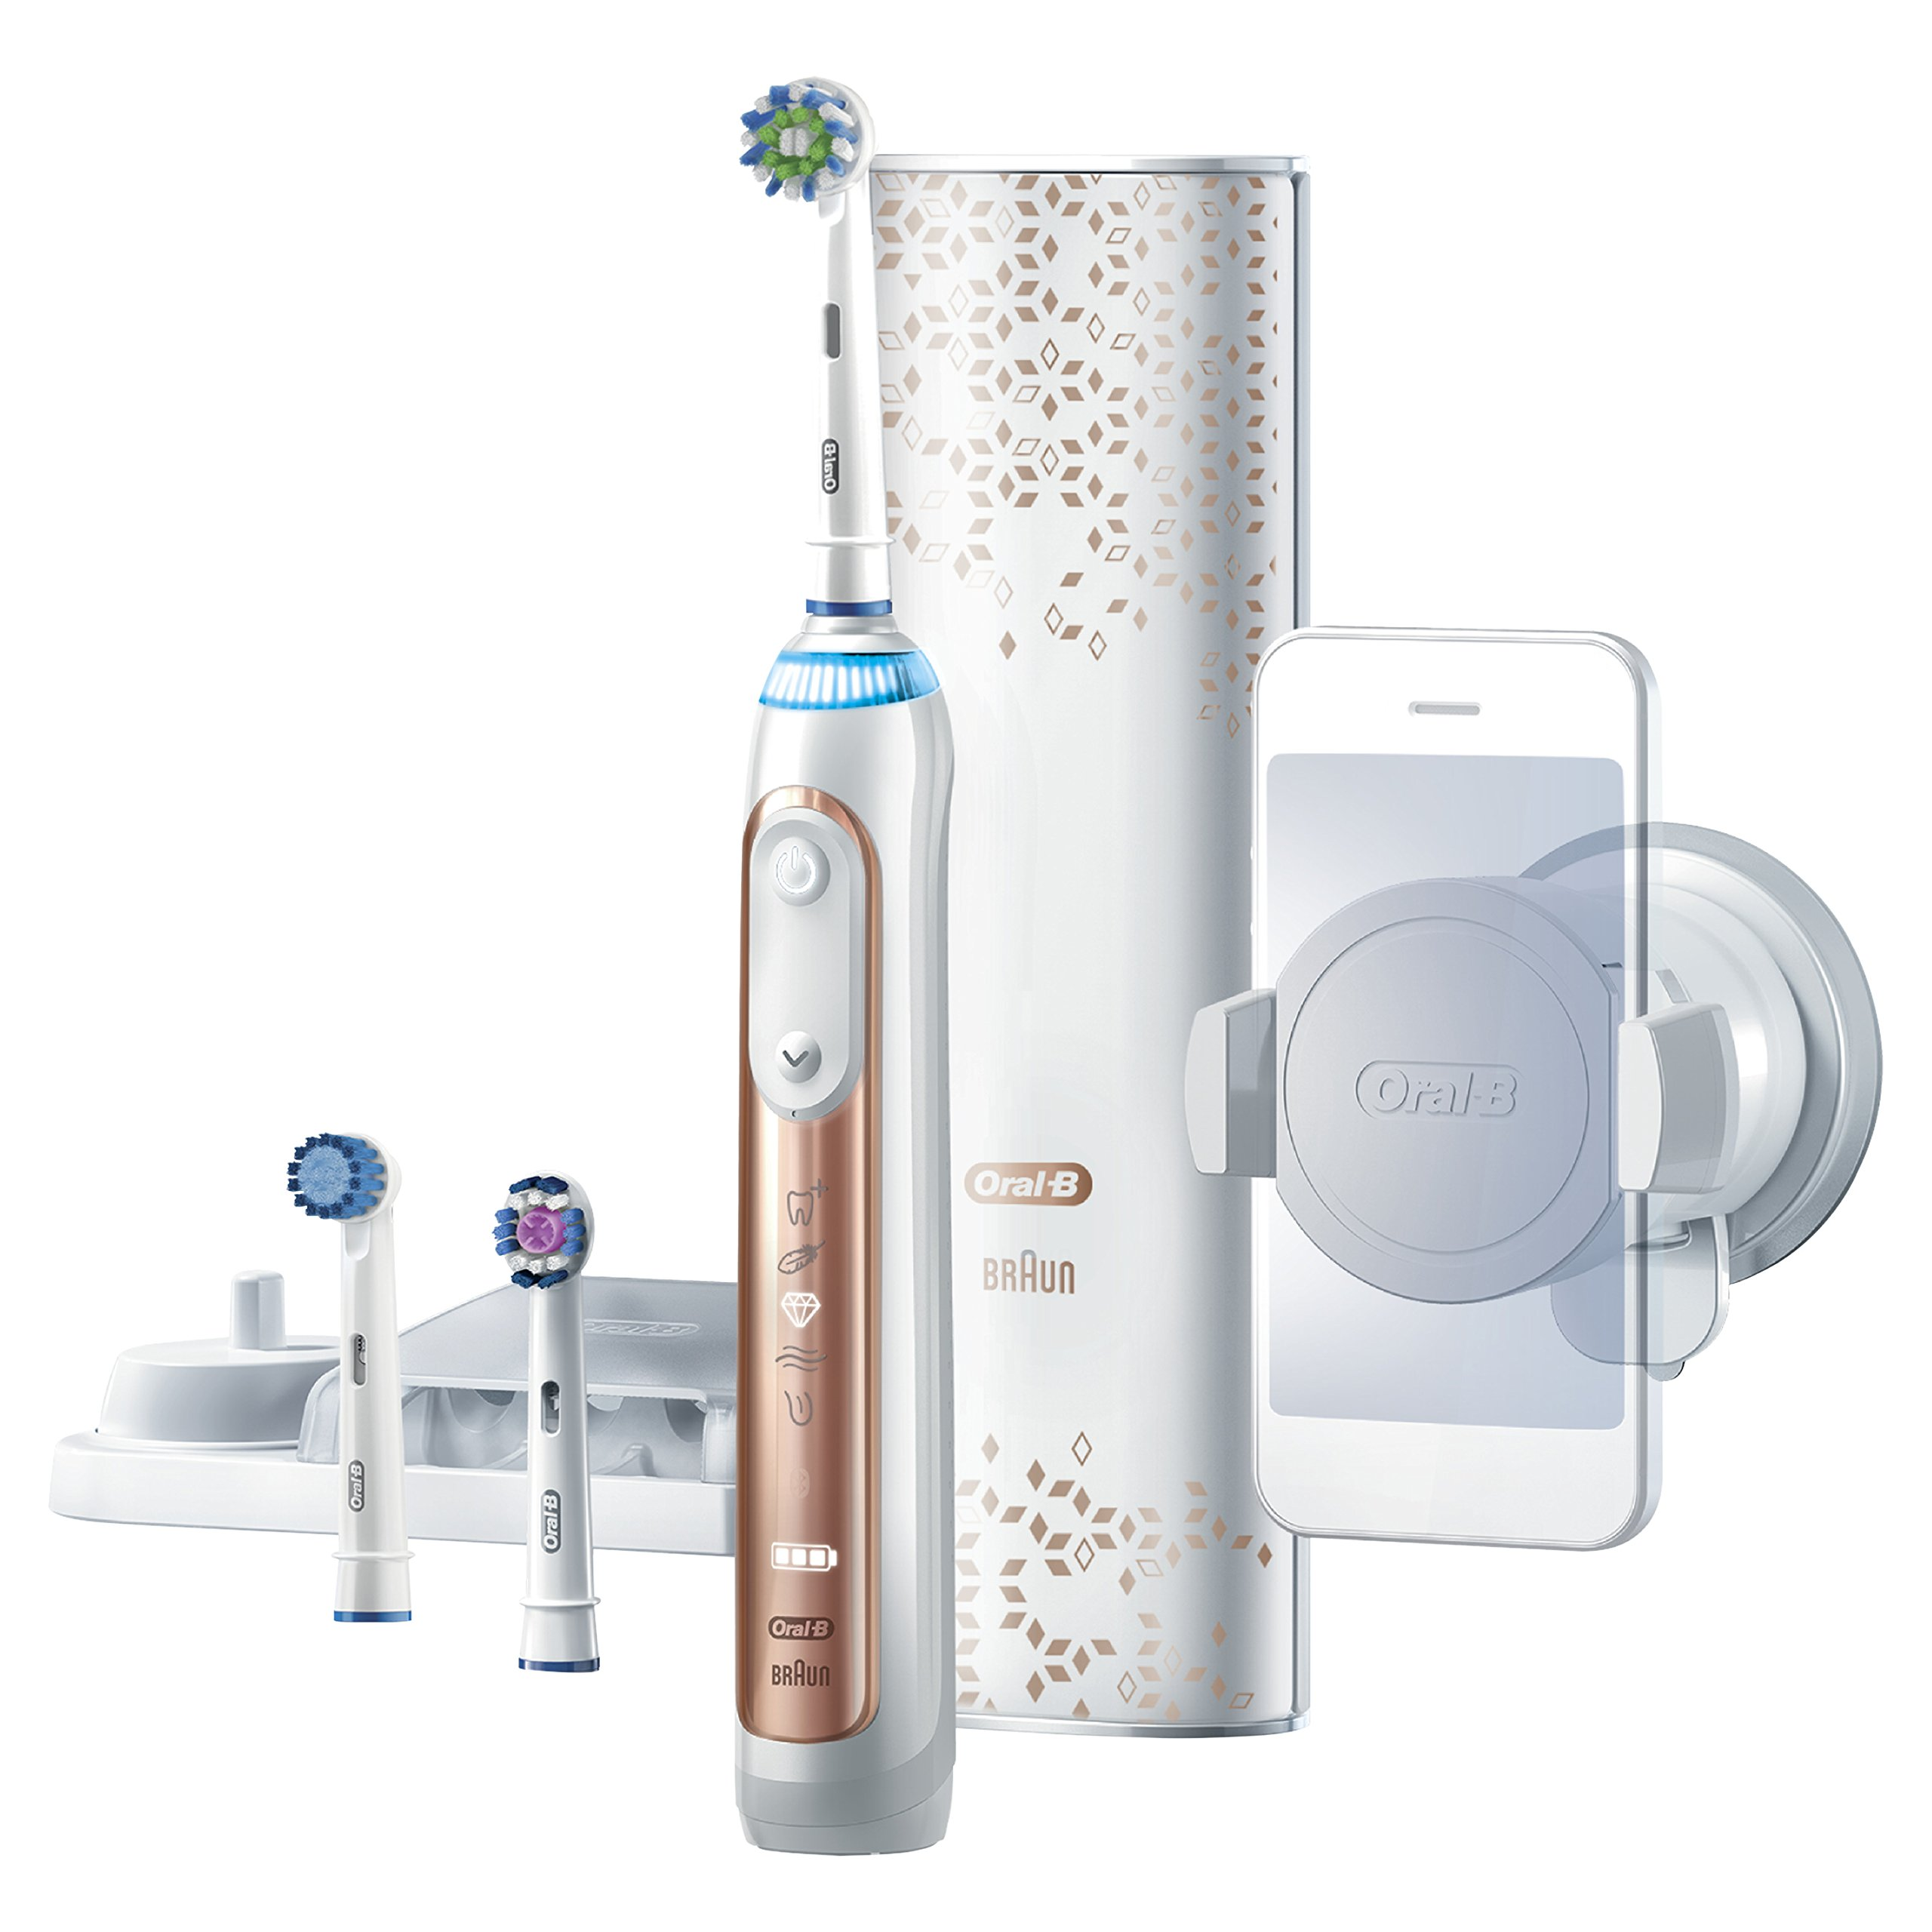 Oral-B Genius Pro 8000 Electronic Power Rechargeable Battery Electric Toothbrush with Bluetooth Connectivity, Rose Gold, Powered by Braun by Oral-B